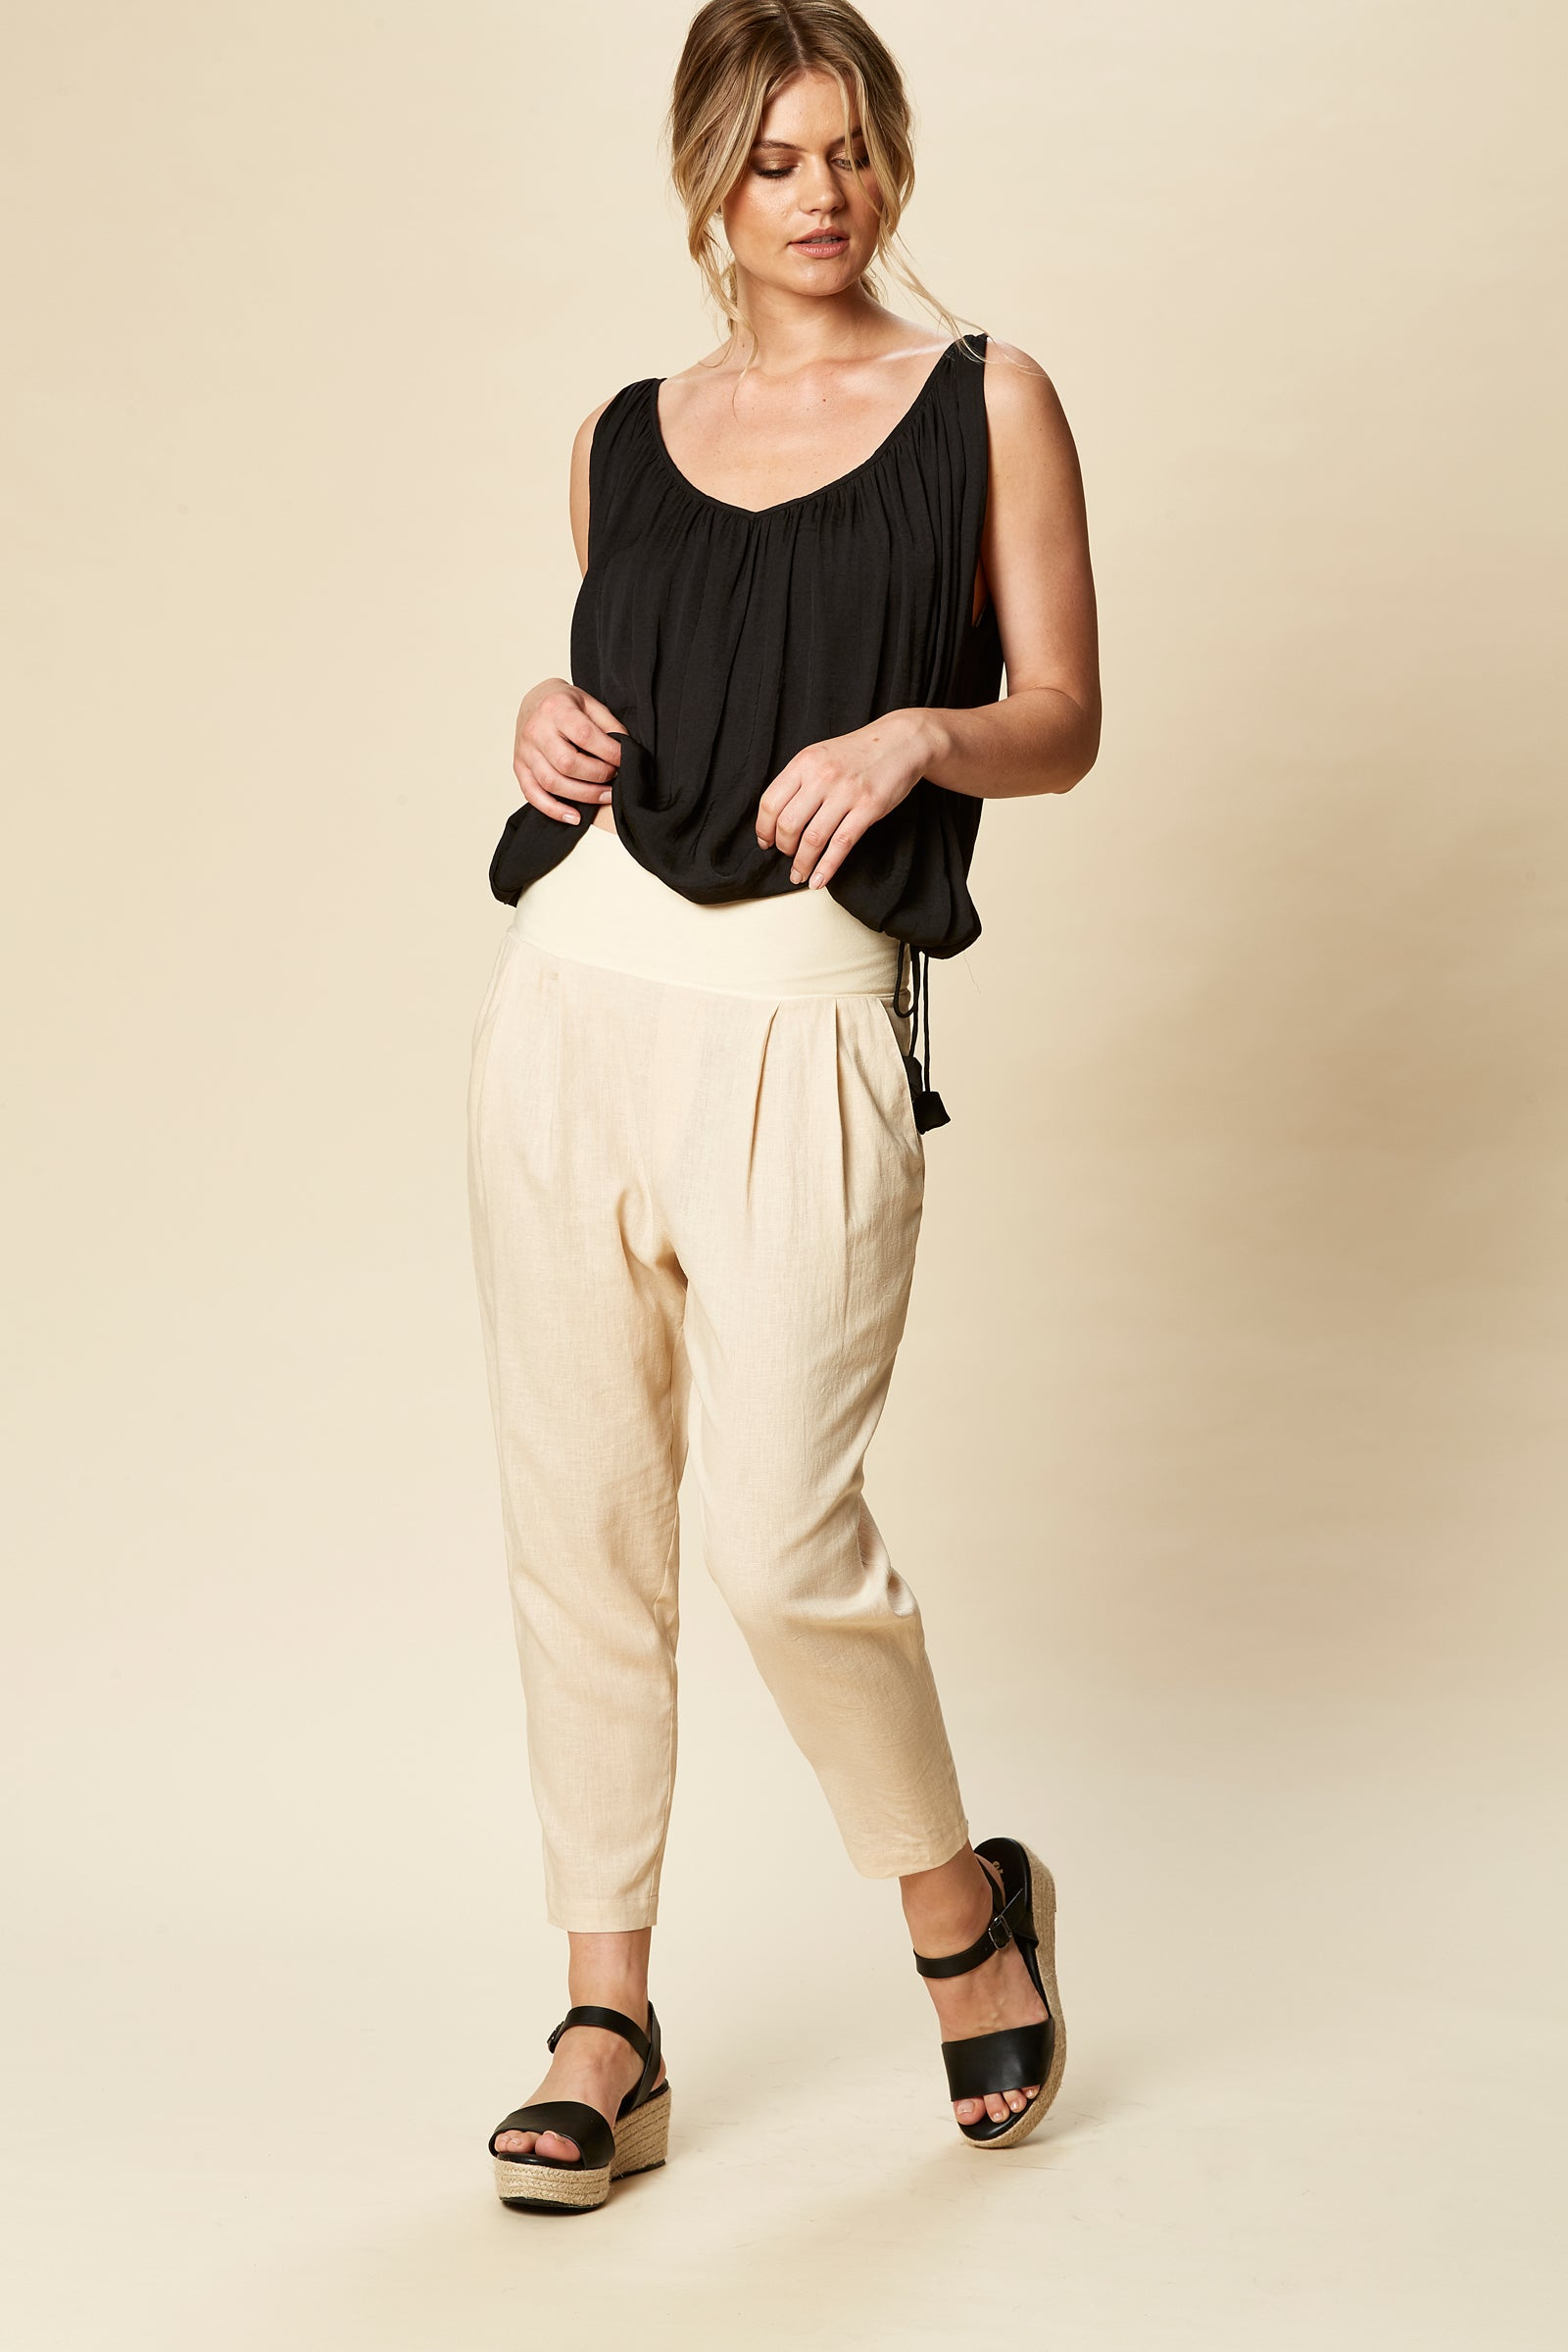 Siela Pant - Bisque - eb&ive Clothing - Pant Relaxed